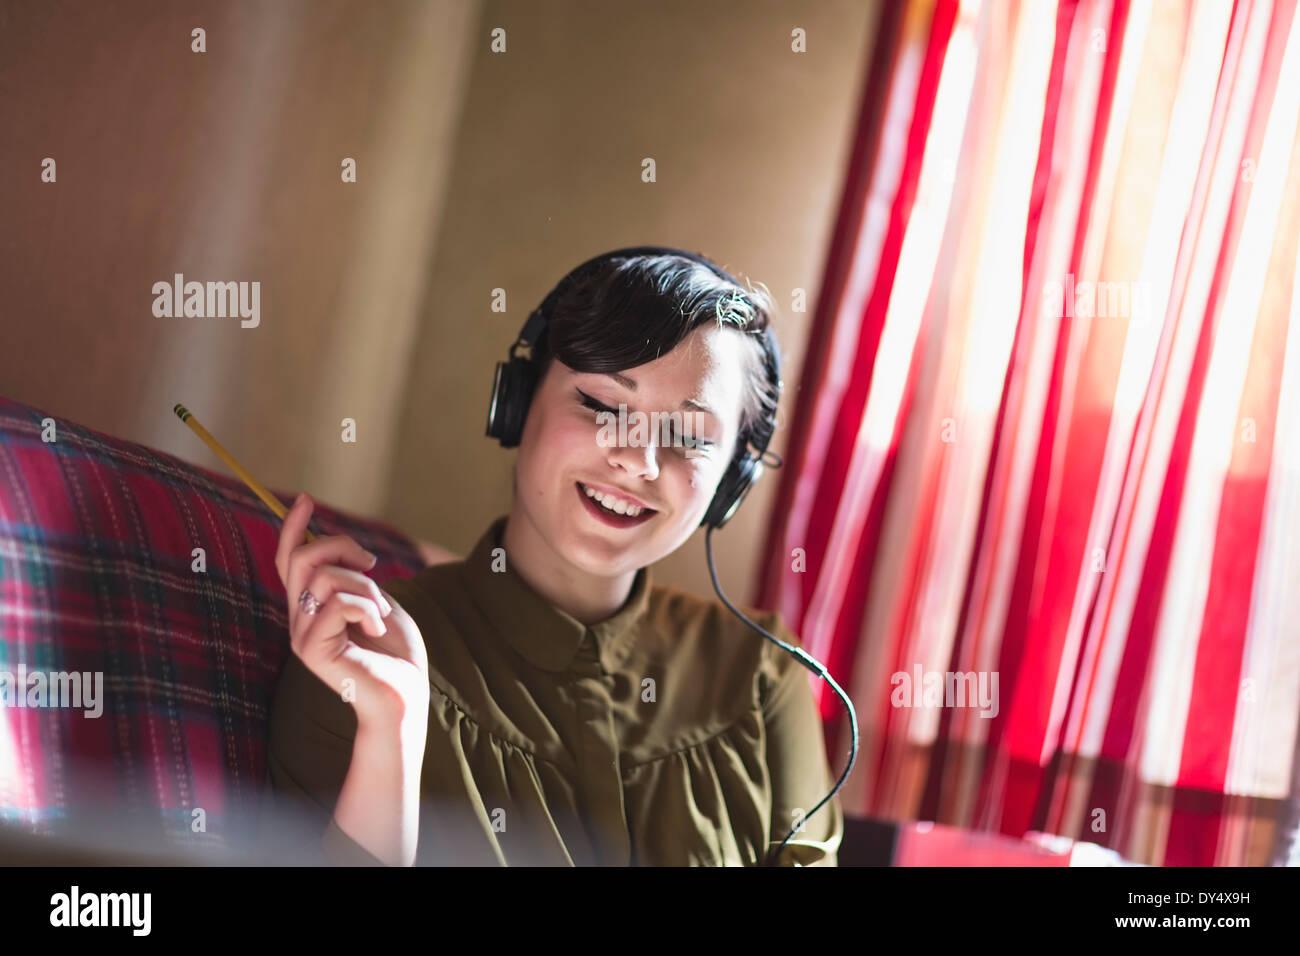 Young woman listening to music - Stock Image